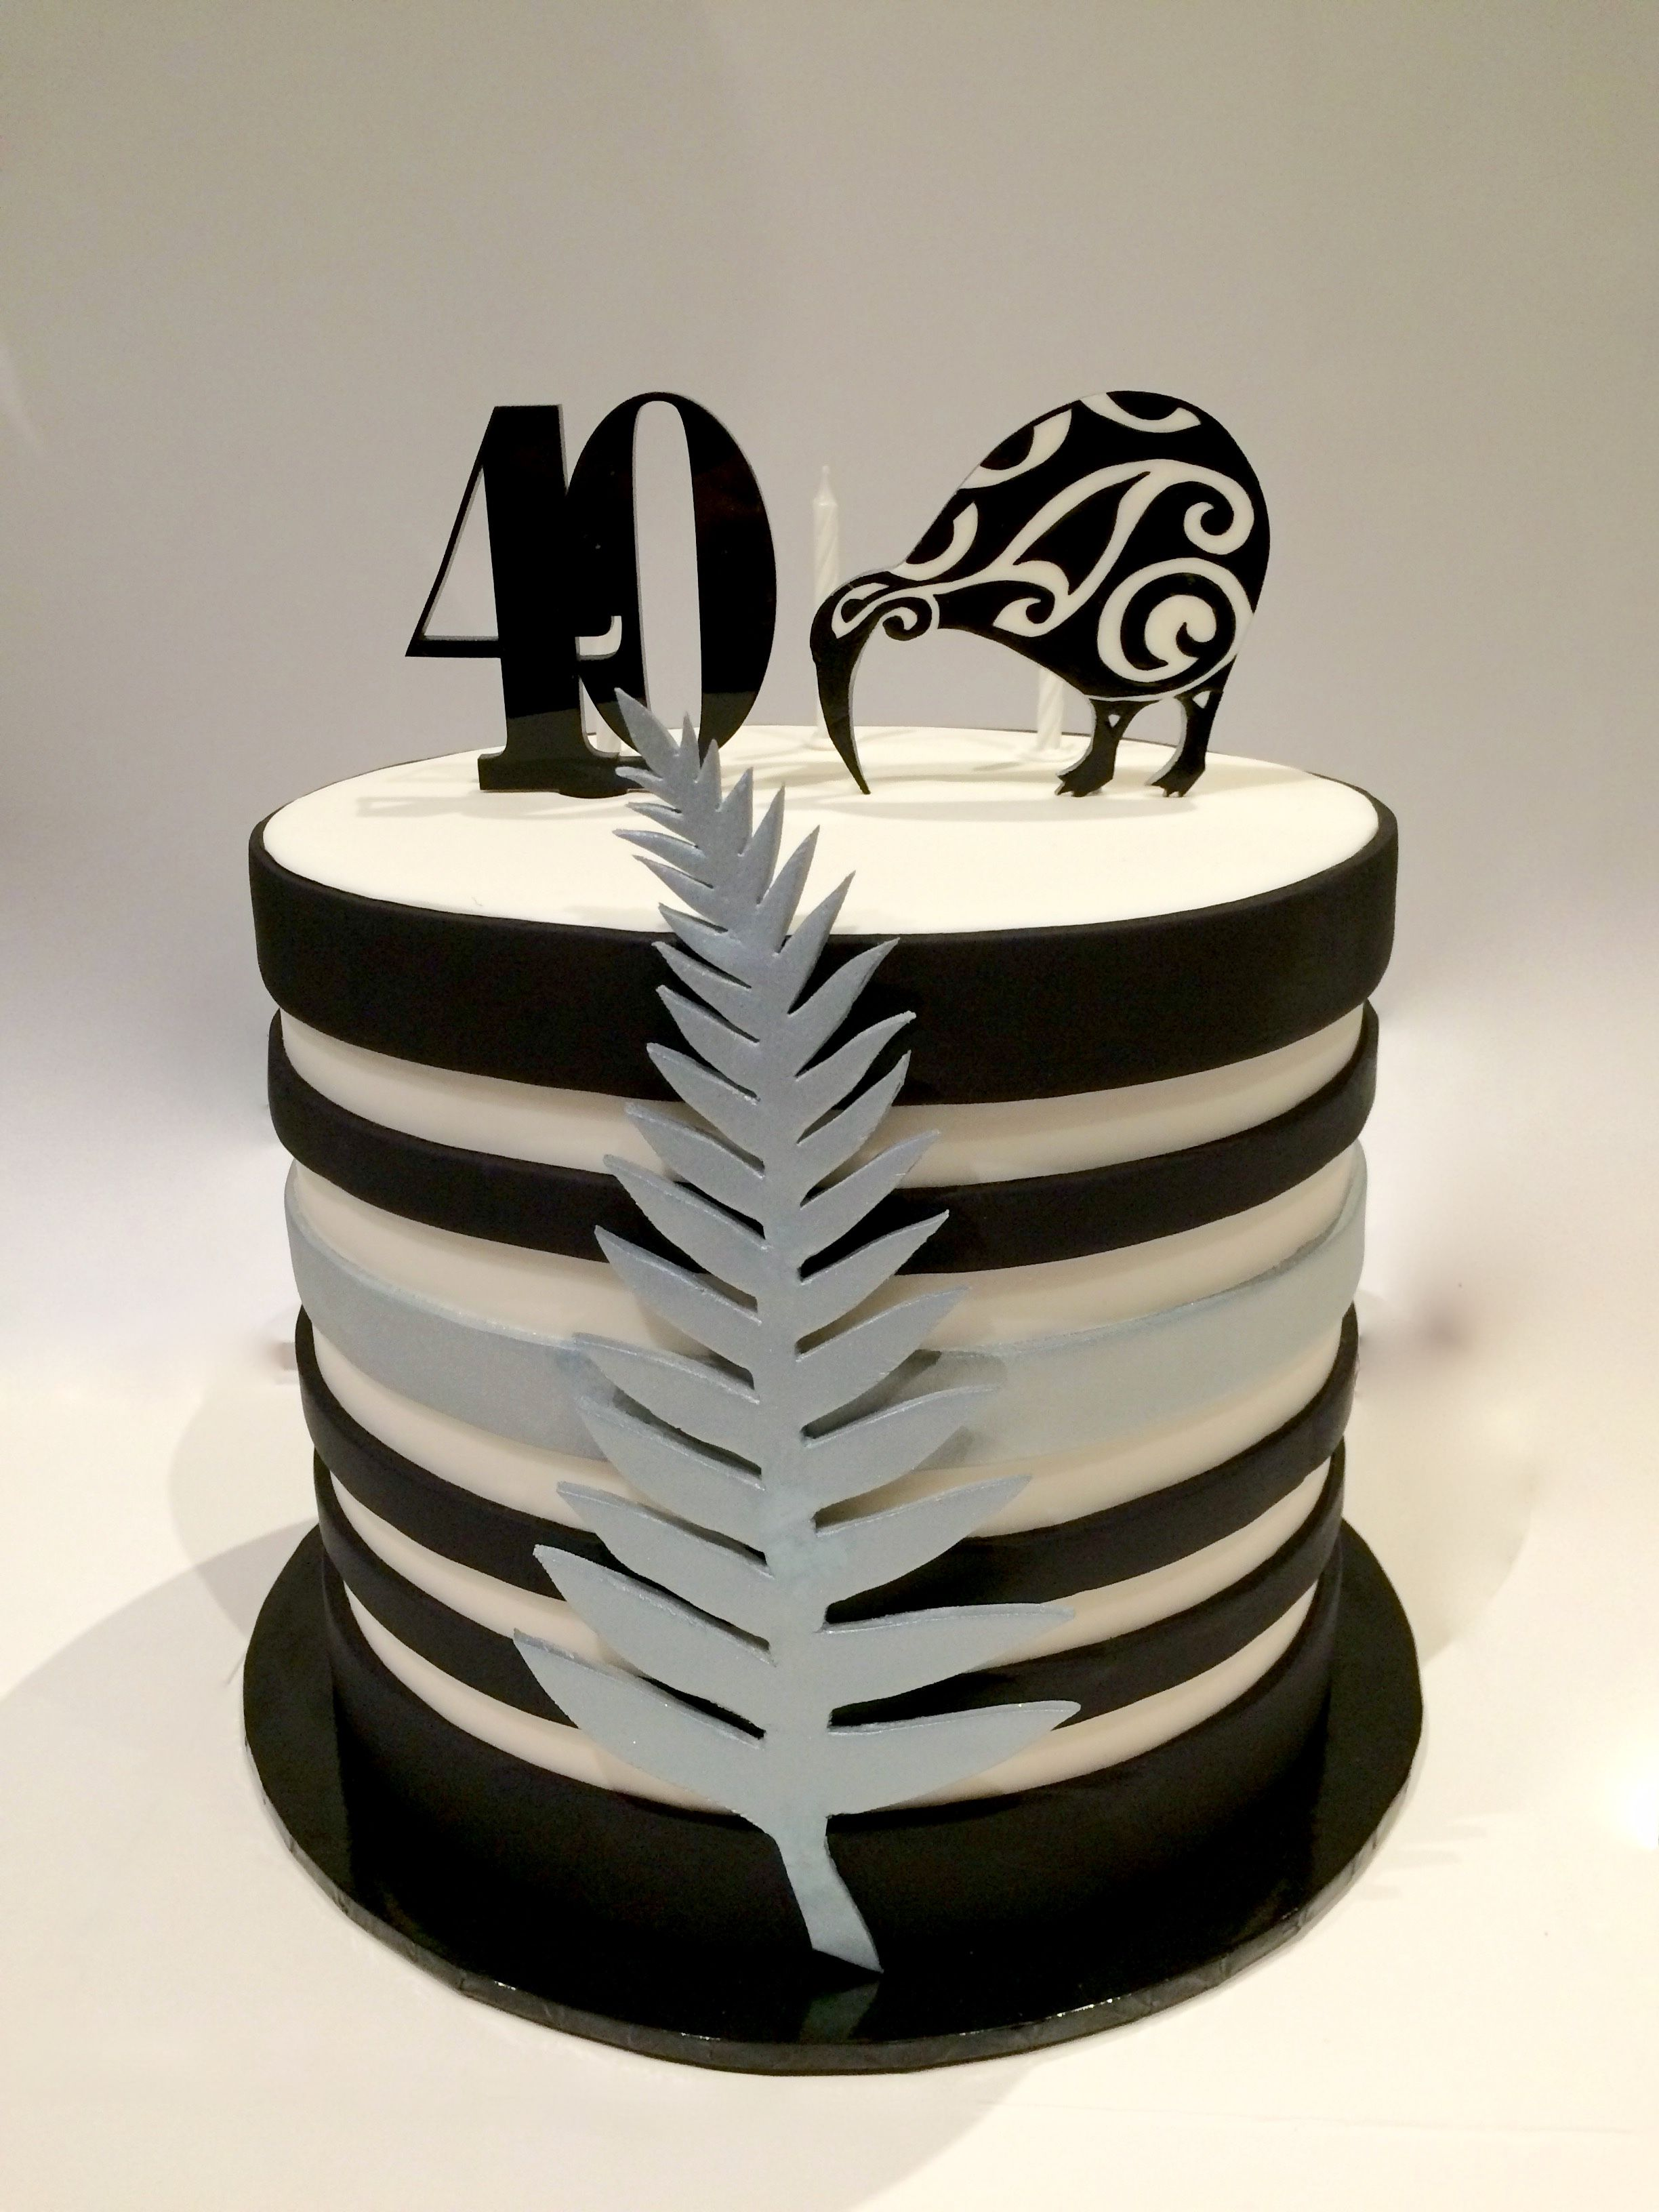 A 40th Birthday Cake with a New Zealand theme. Alternate